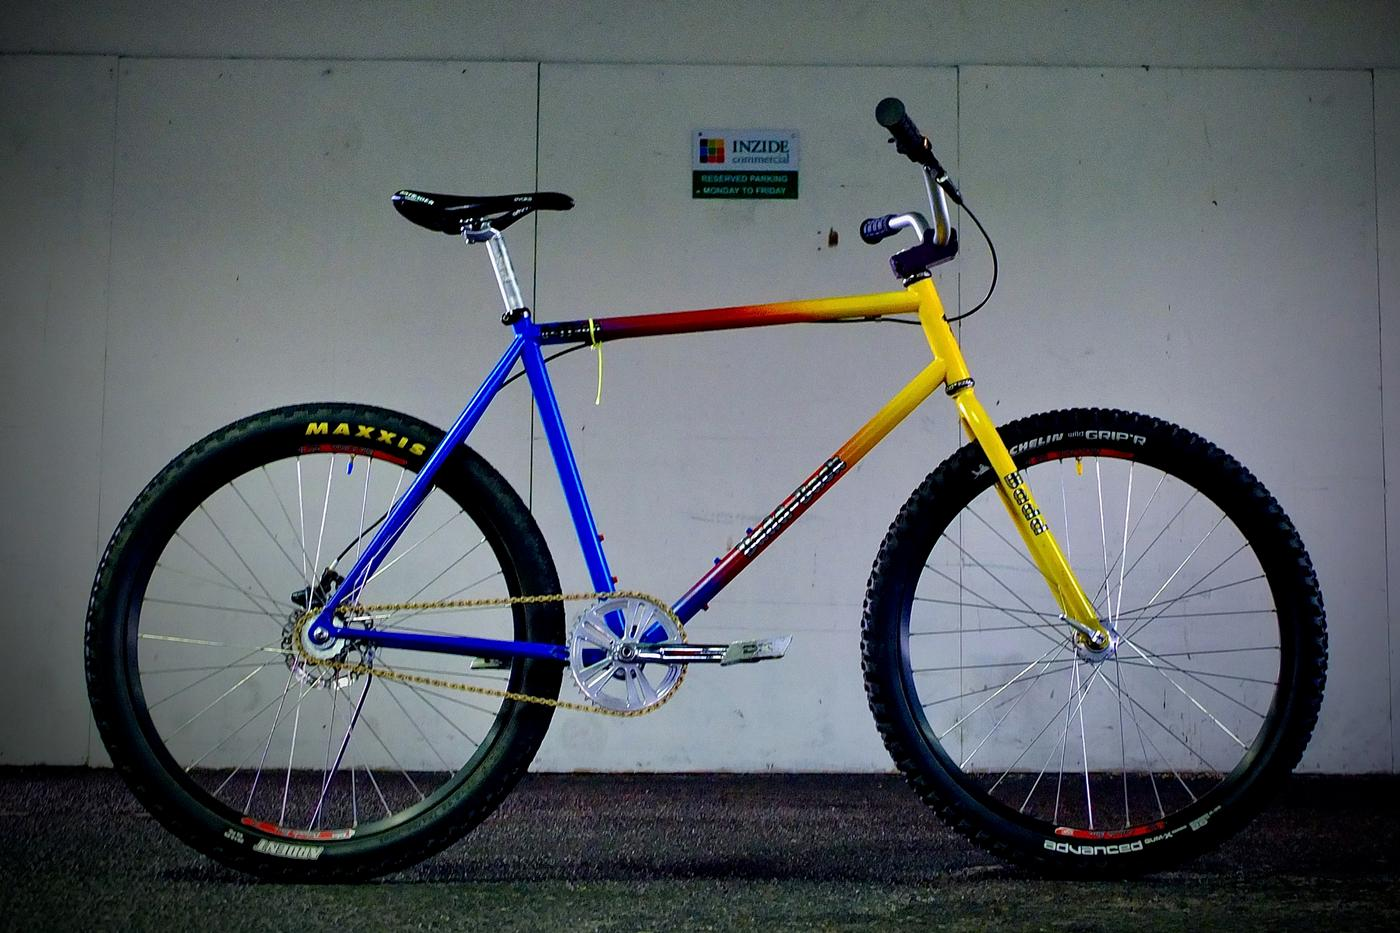 Readers' Rides: Timothy White's Customized Diamondback Cruiser